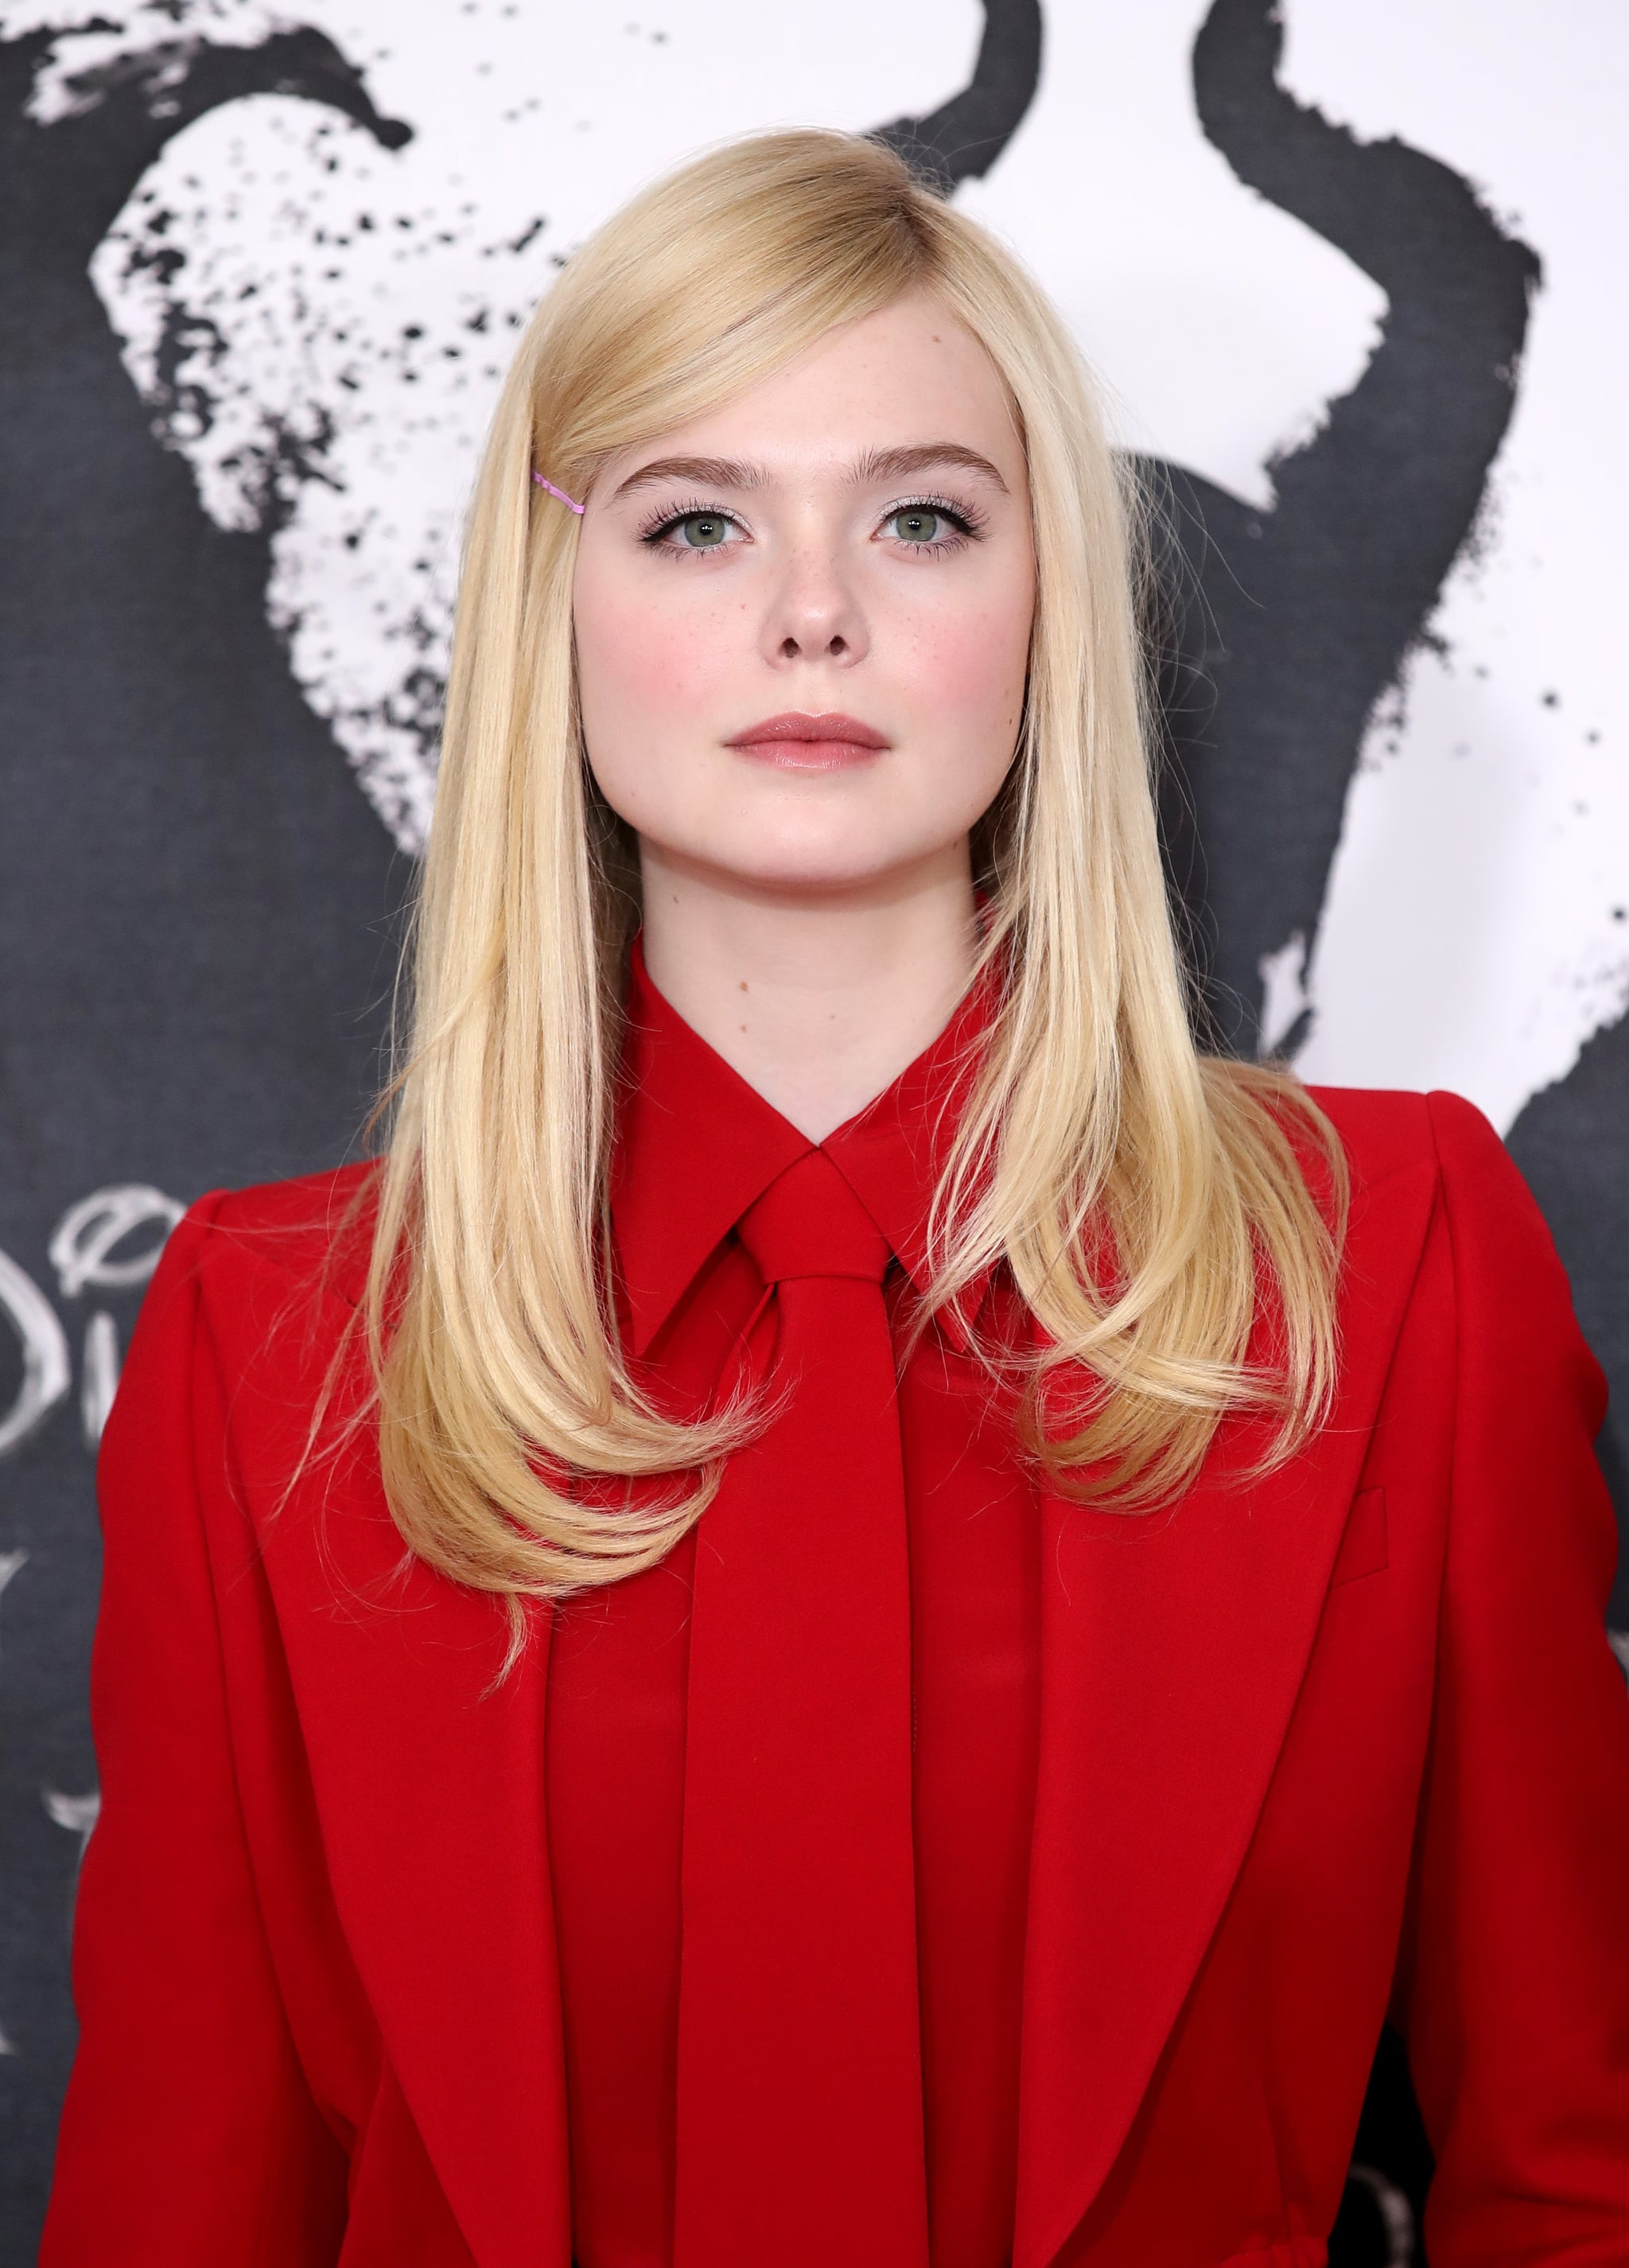 LONDON, ENGLAND - OCTOBER 10: Elle Fanning attends a photocall for